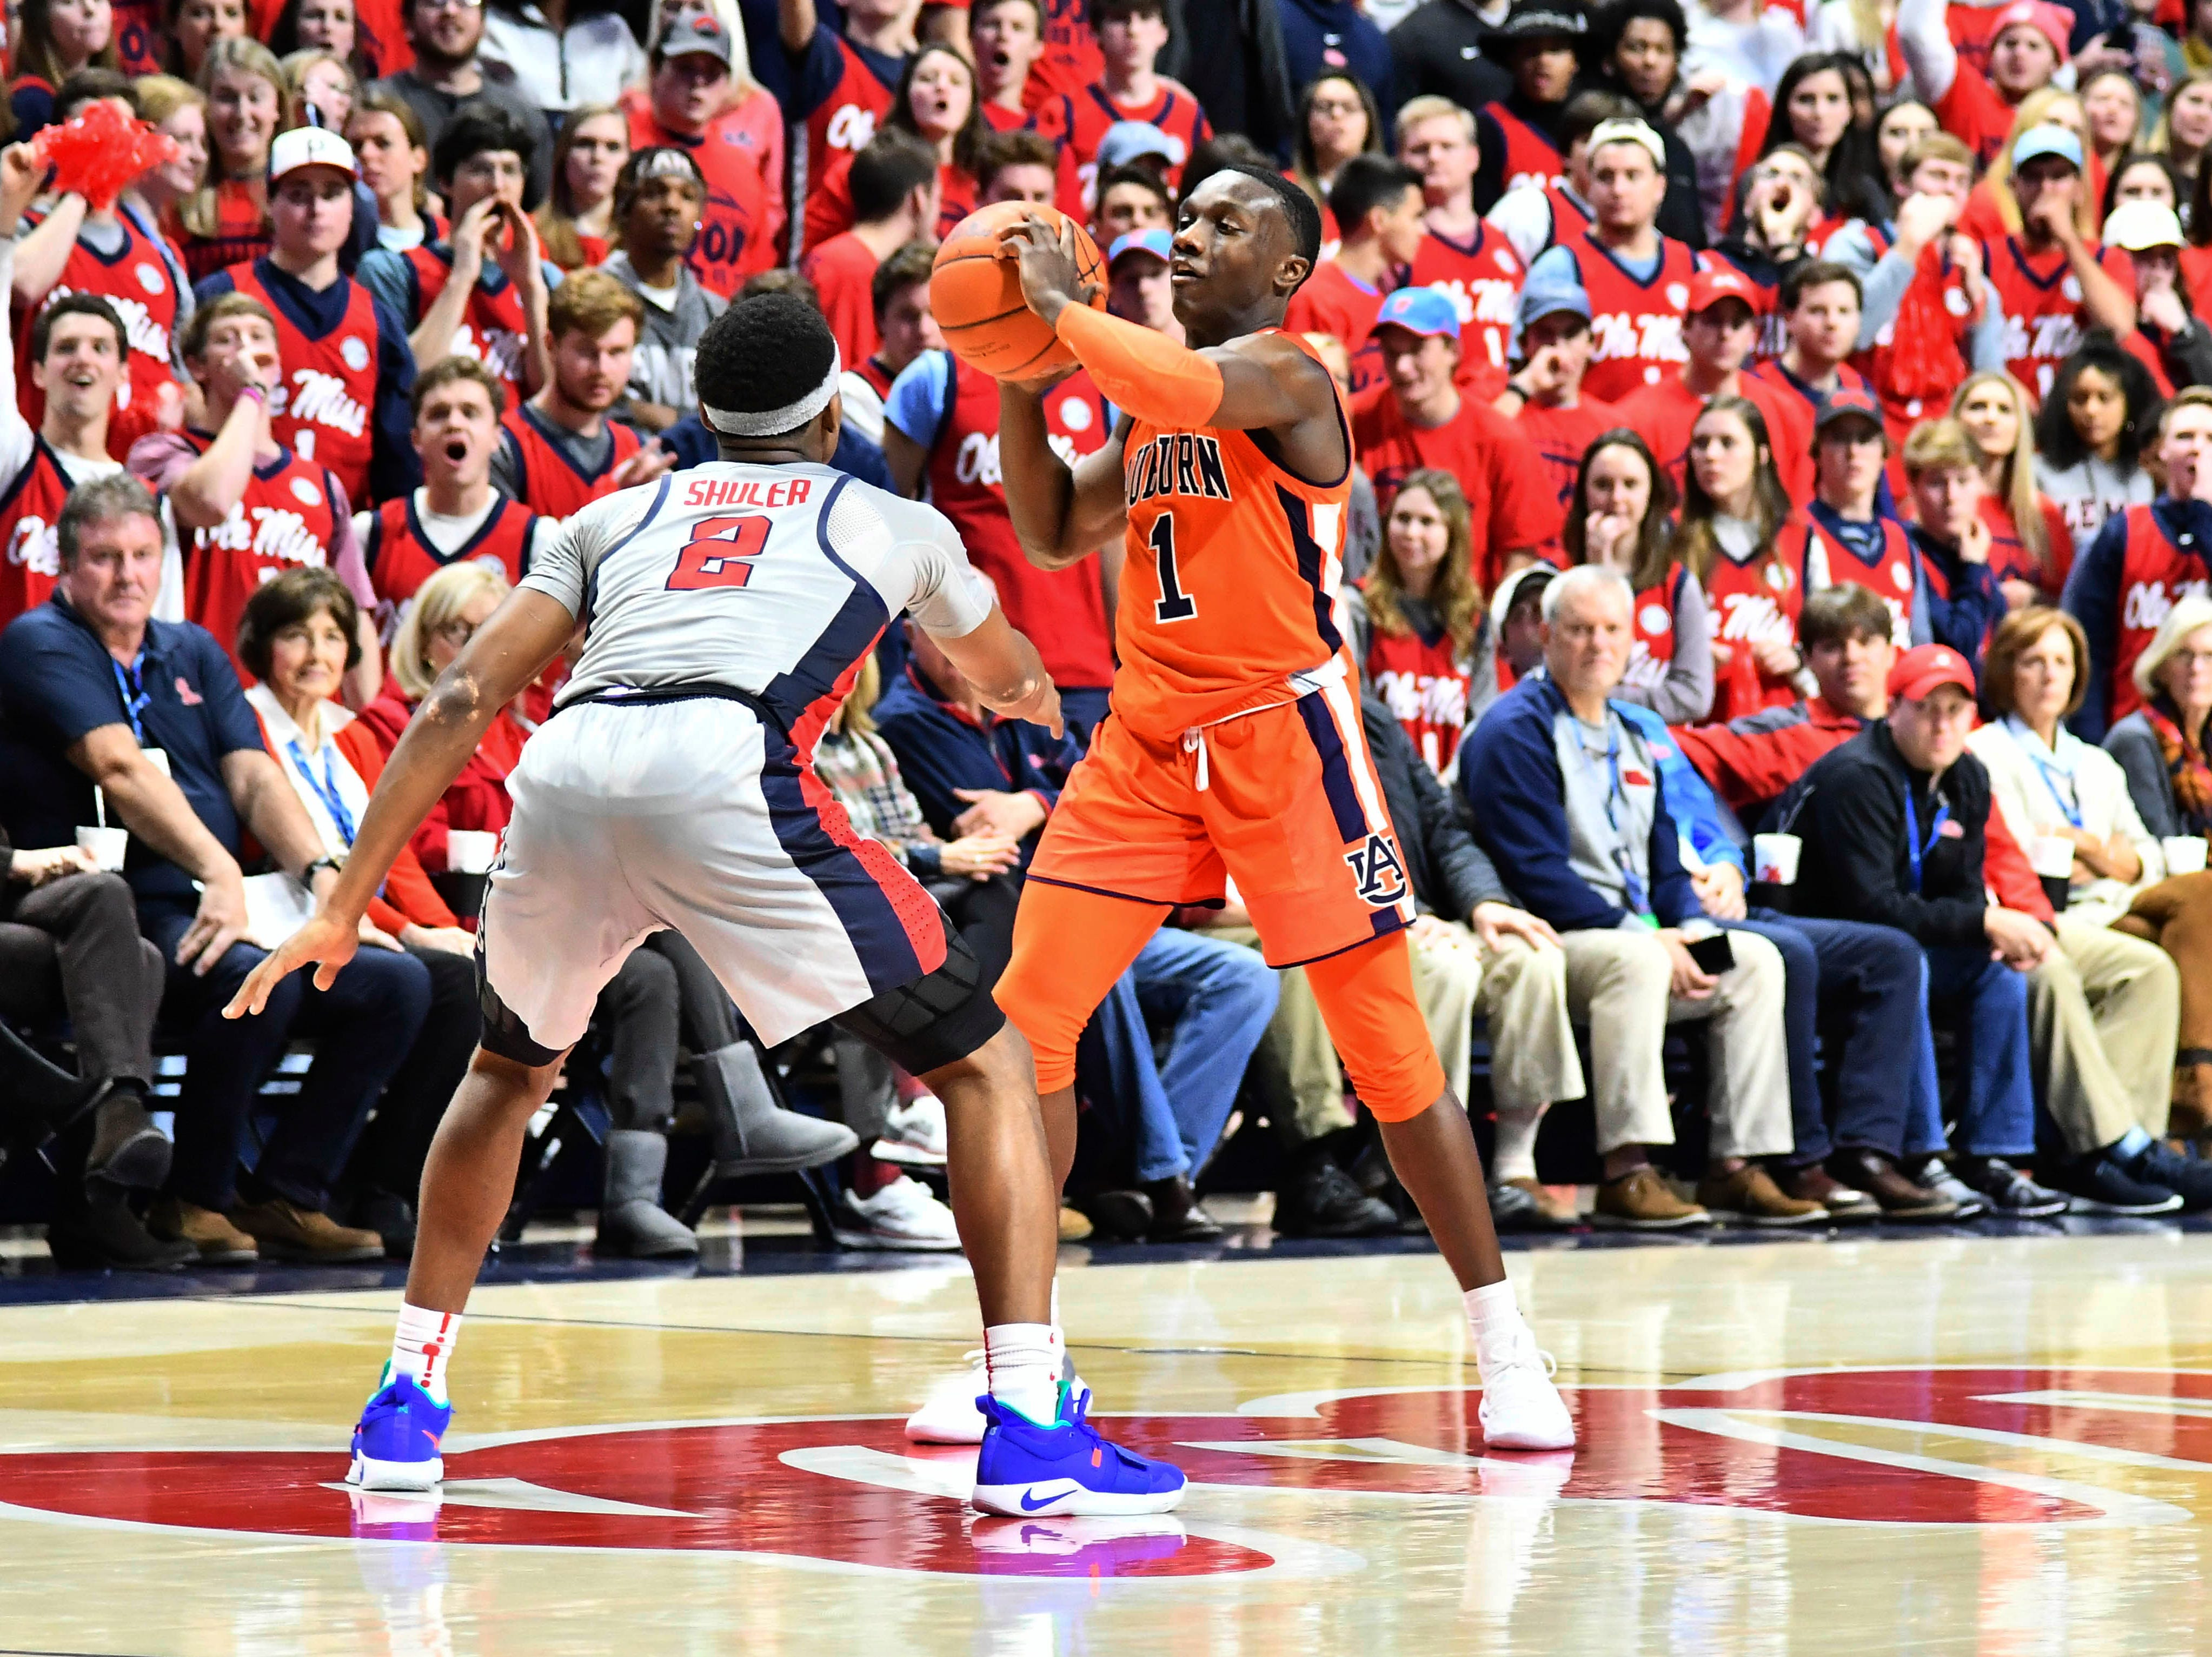 Jan 9, 2019; Oxford, MS, USA; Auburn Tigers guard Jared Harper (1) holds the ball defended by Mississippi Rebels guard Devontae Shuler (2) at The Pavilion at Ole Miss. Mandatory Credit: Matt Bush-USA TODAY Sports